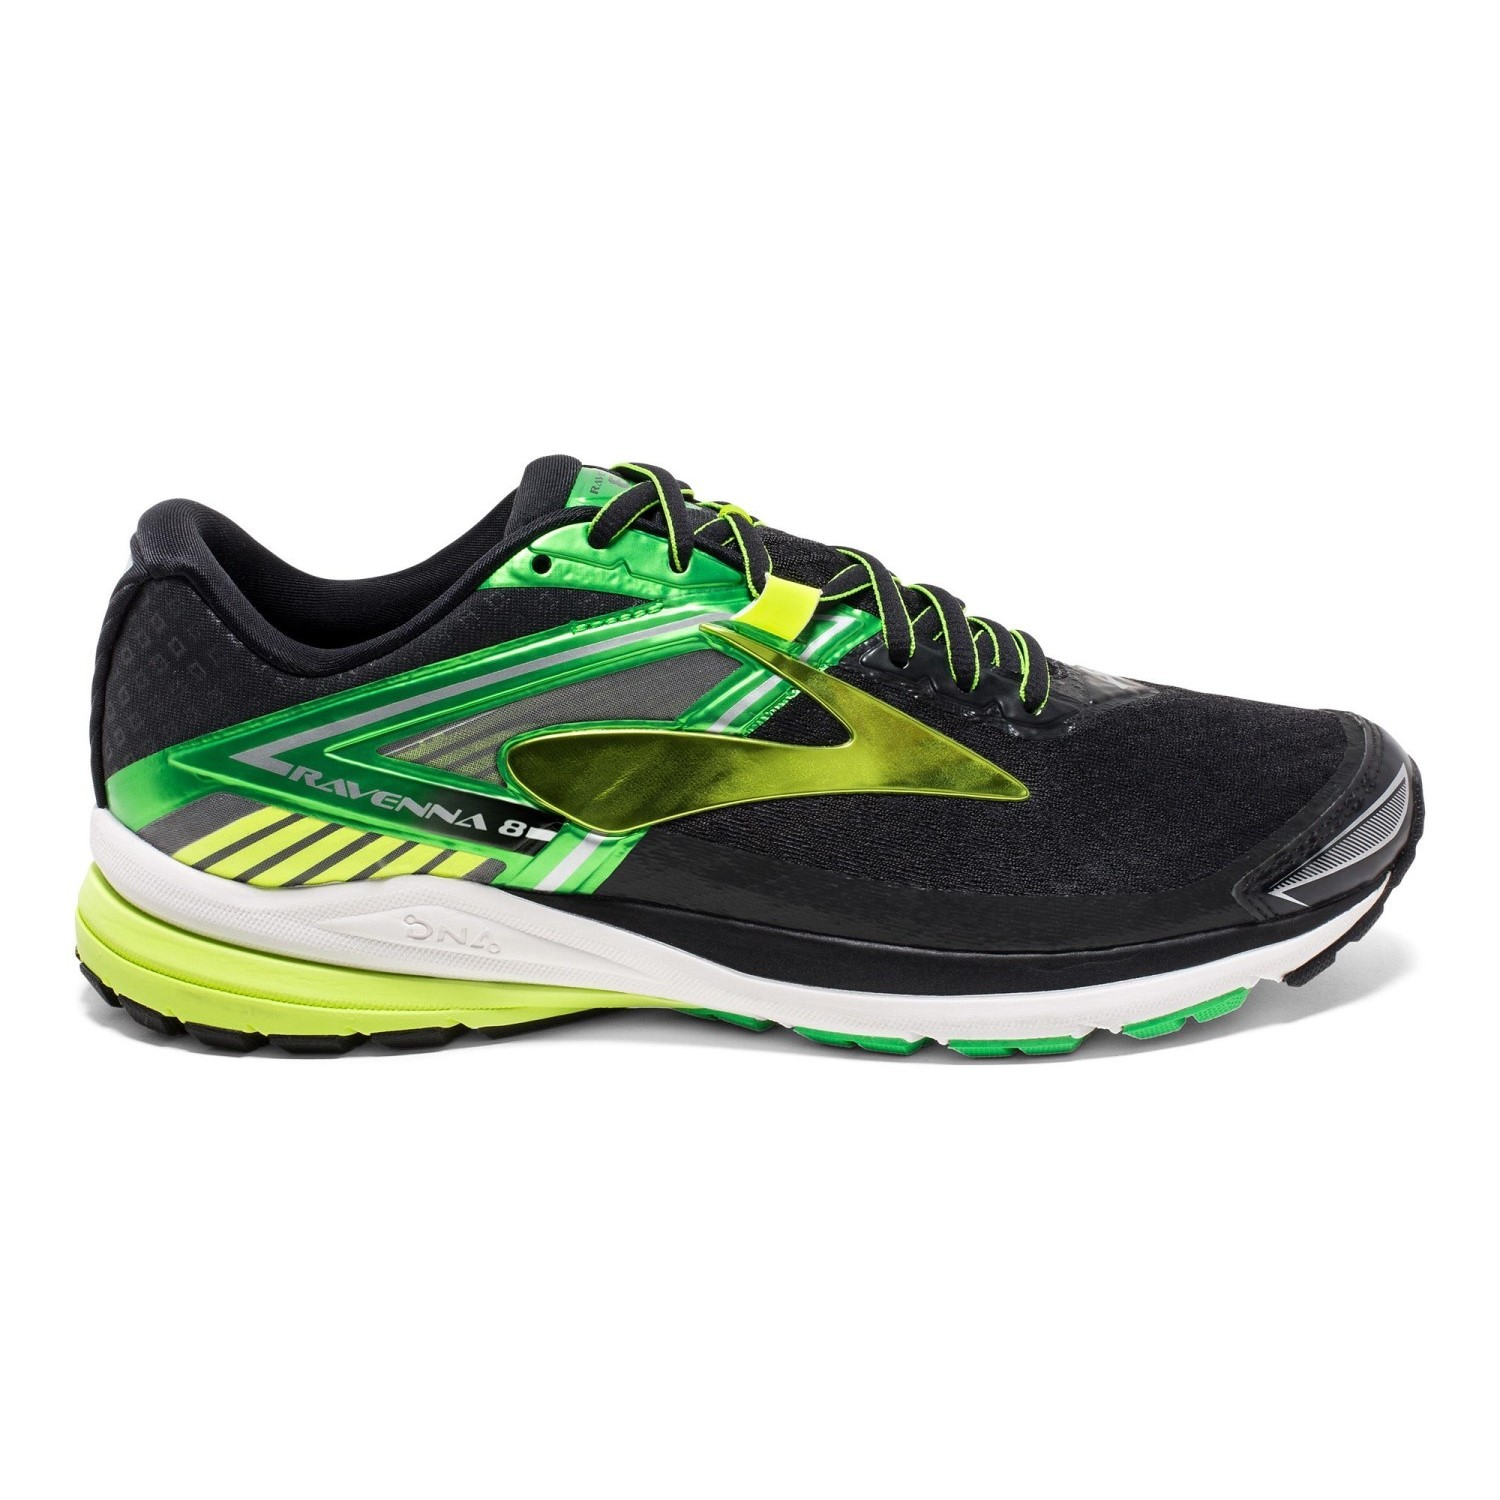 08053a6a7a2 Brooks Ravenna 8 - Mens Running Shoes - Black Green Nightlife Online ...